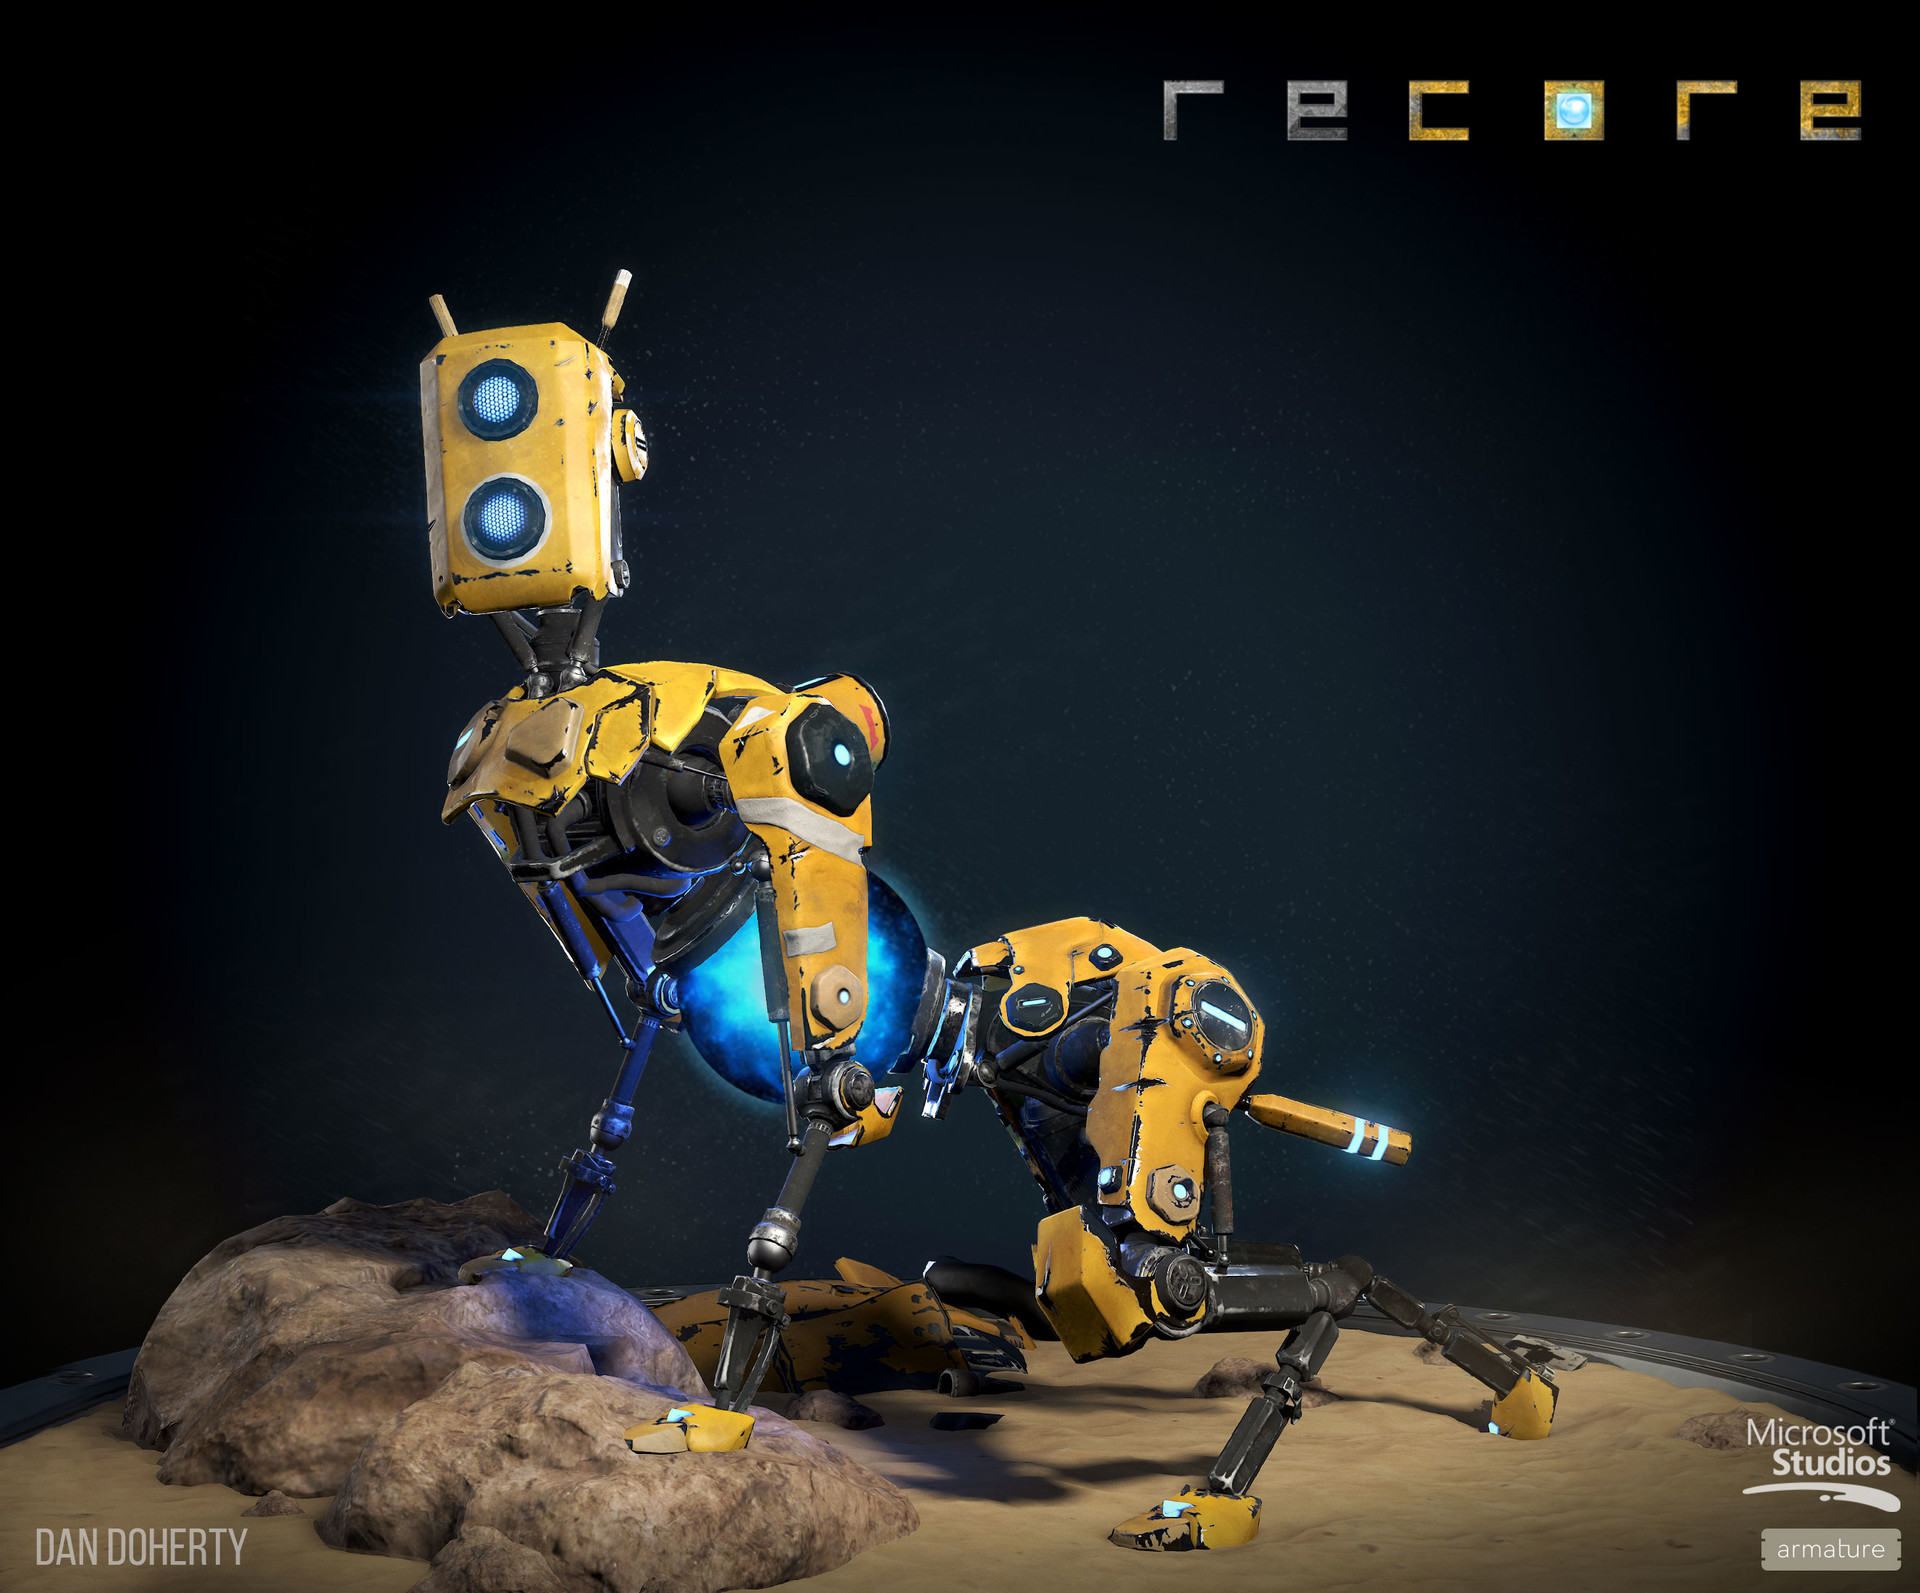 ReCore Game Art by Dan Doherty